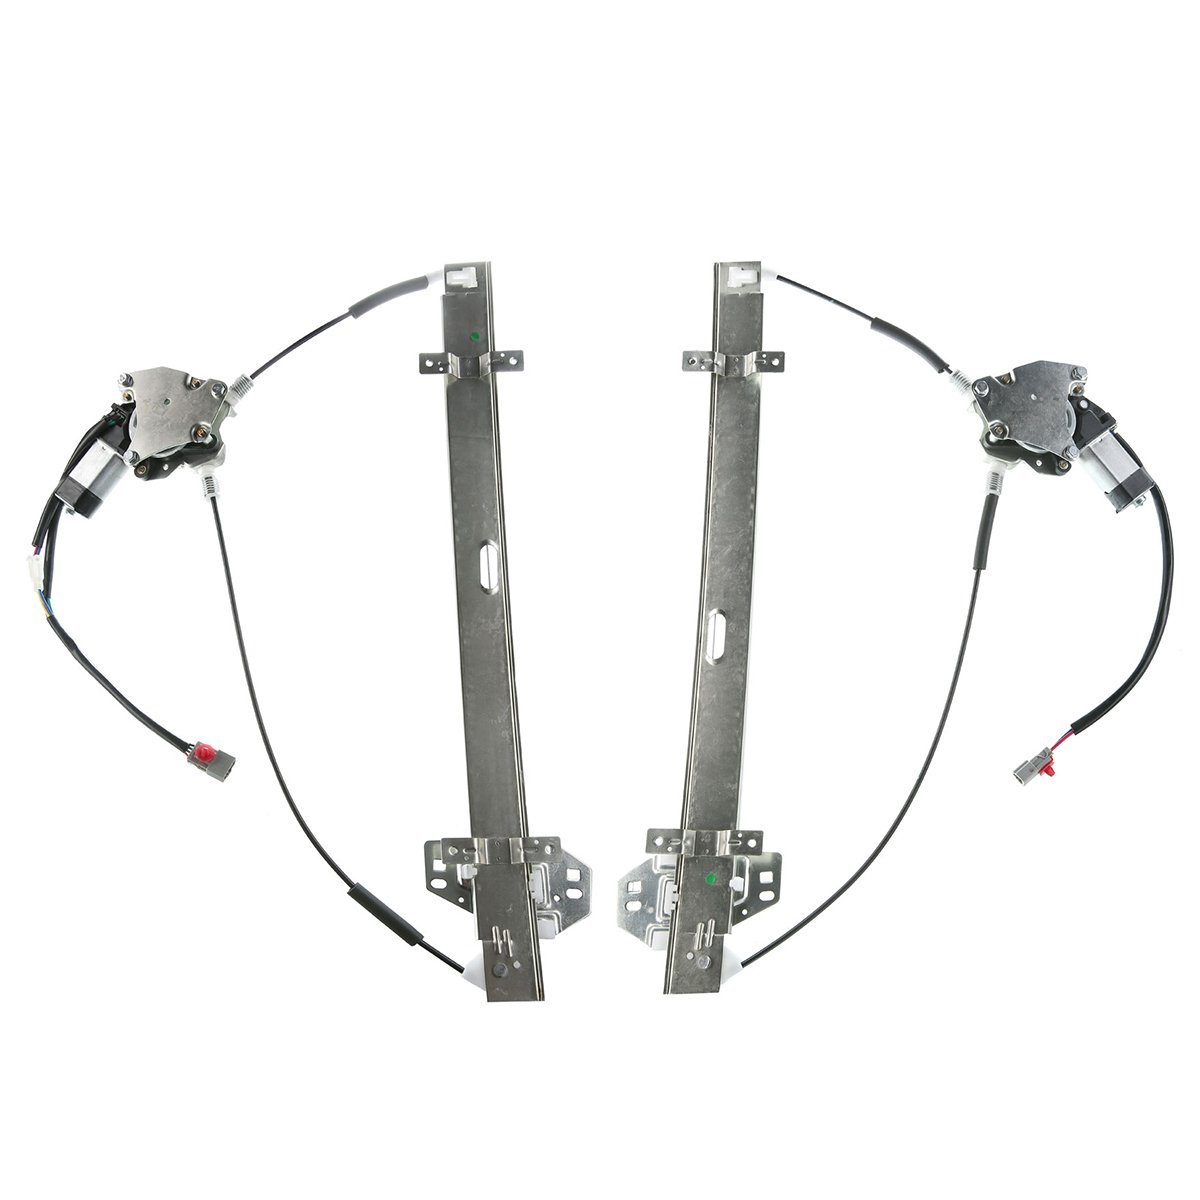 Set of 2 Front Driver and Passenger Side Window Regulator with Motor for Honda Odyssey 1999-2002 by YHTAUTO